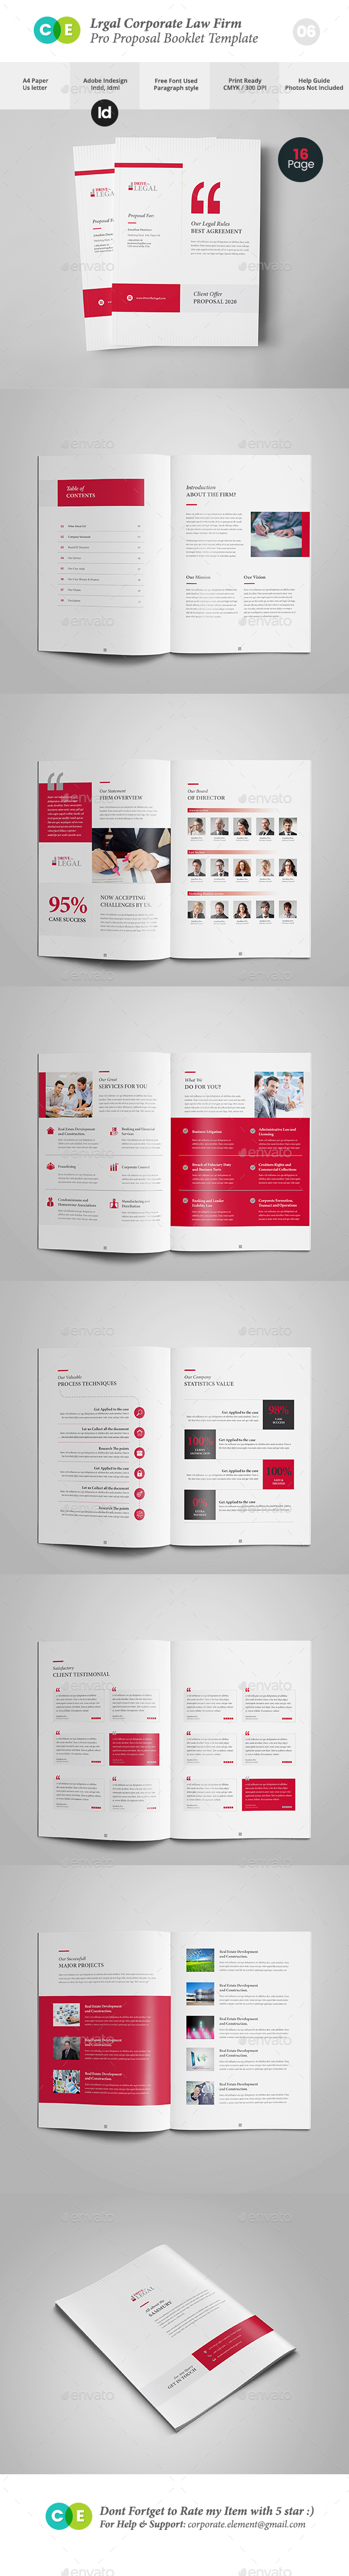 Legal Corporate Law Firm Business Proposal V06 - Proposals & Invoices Stationery